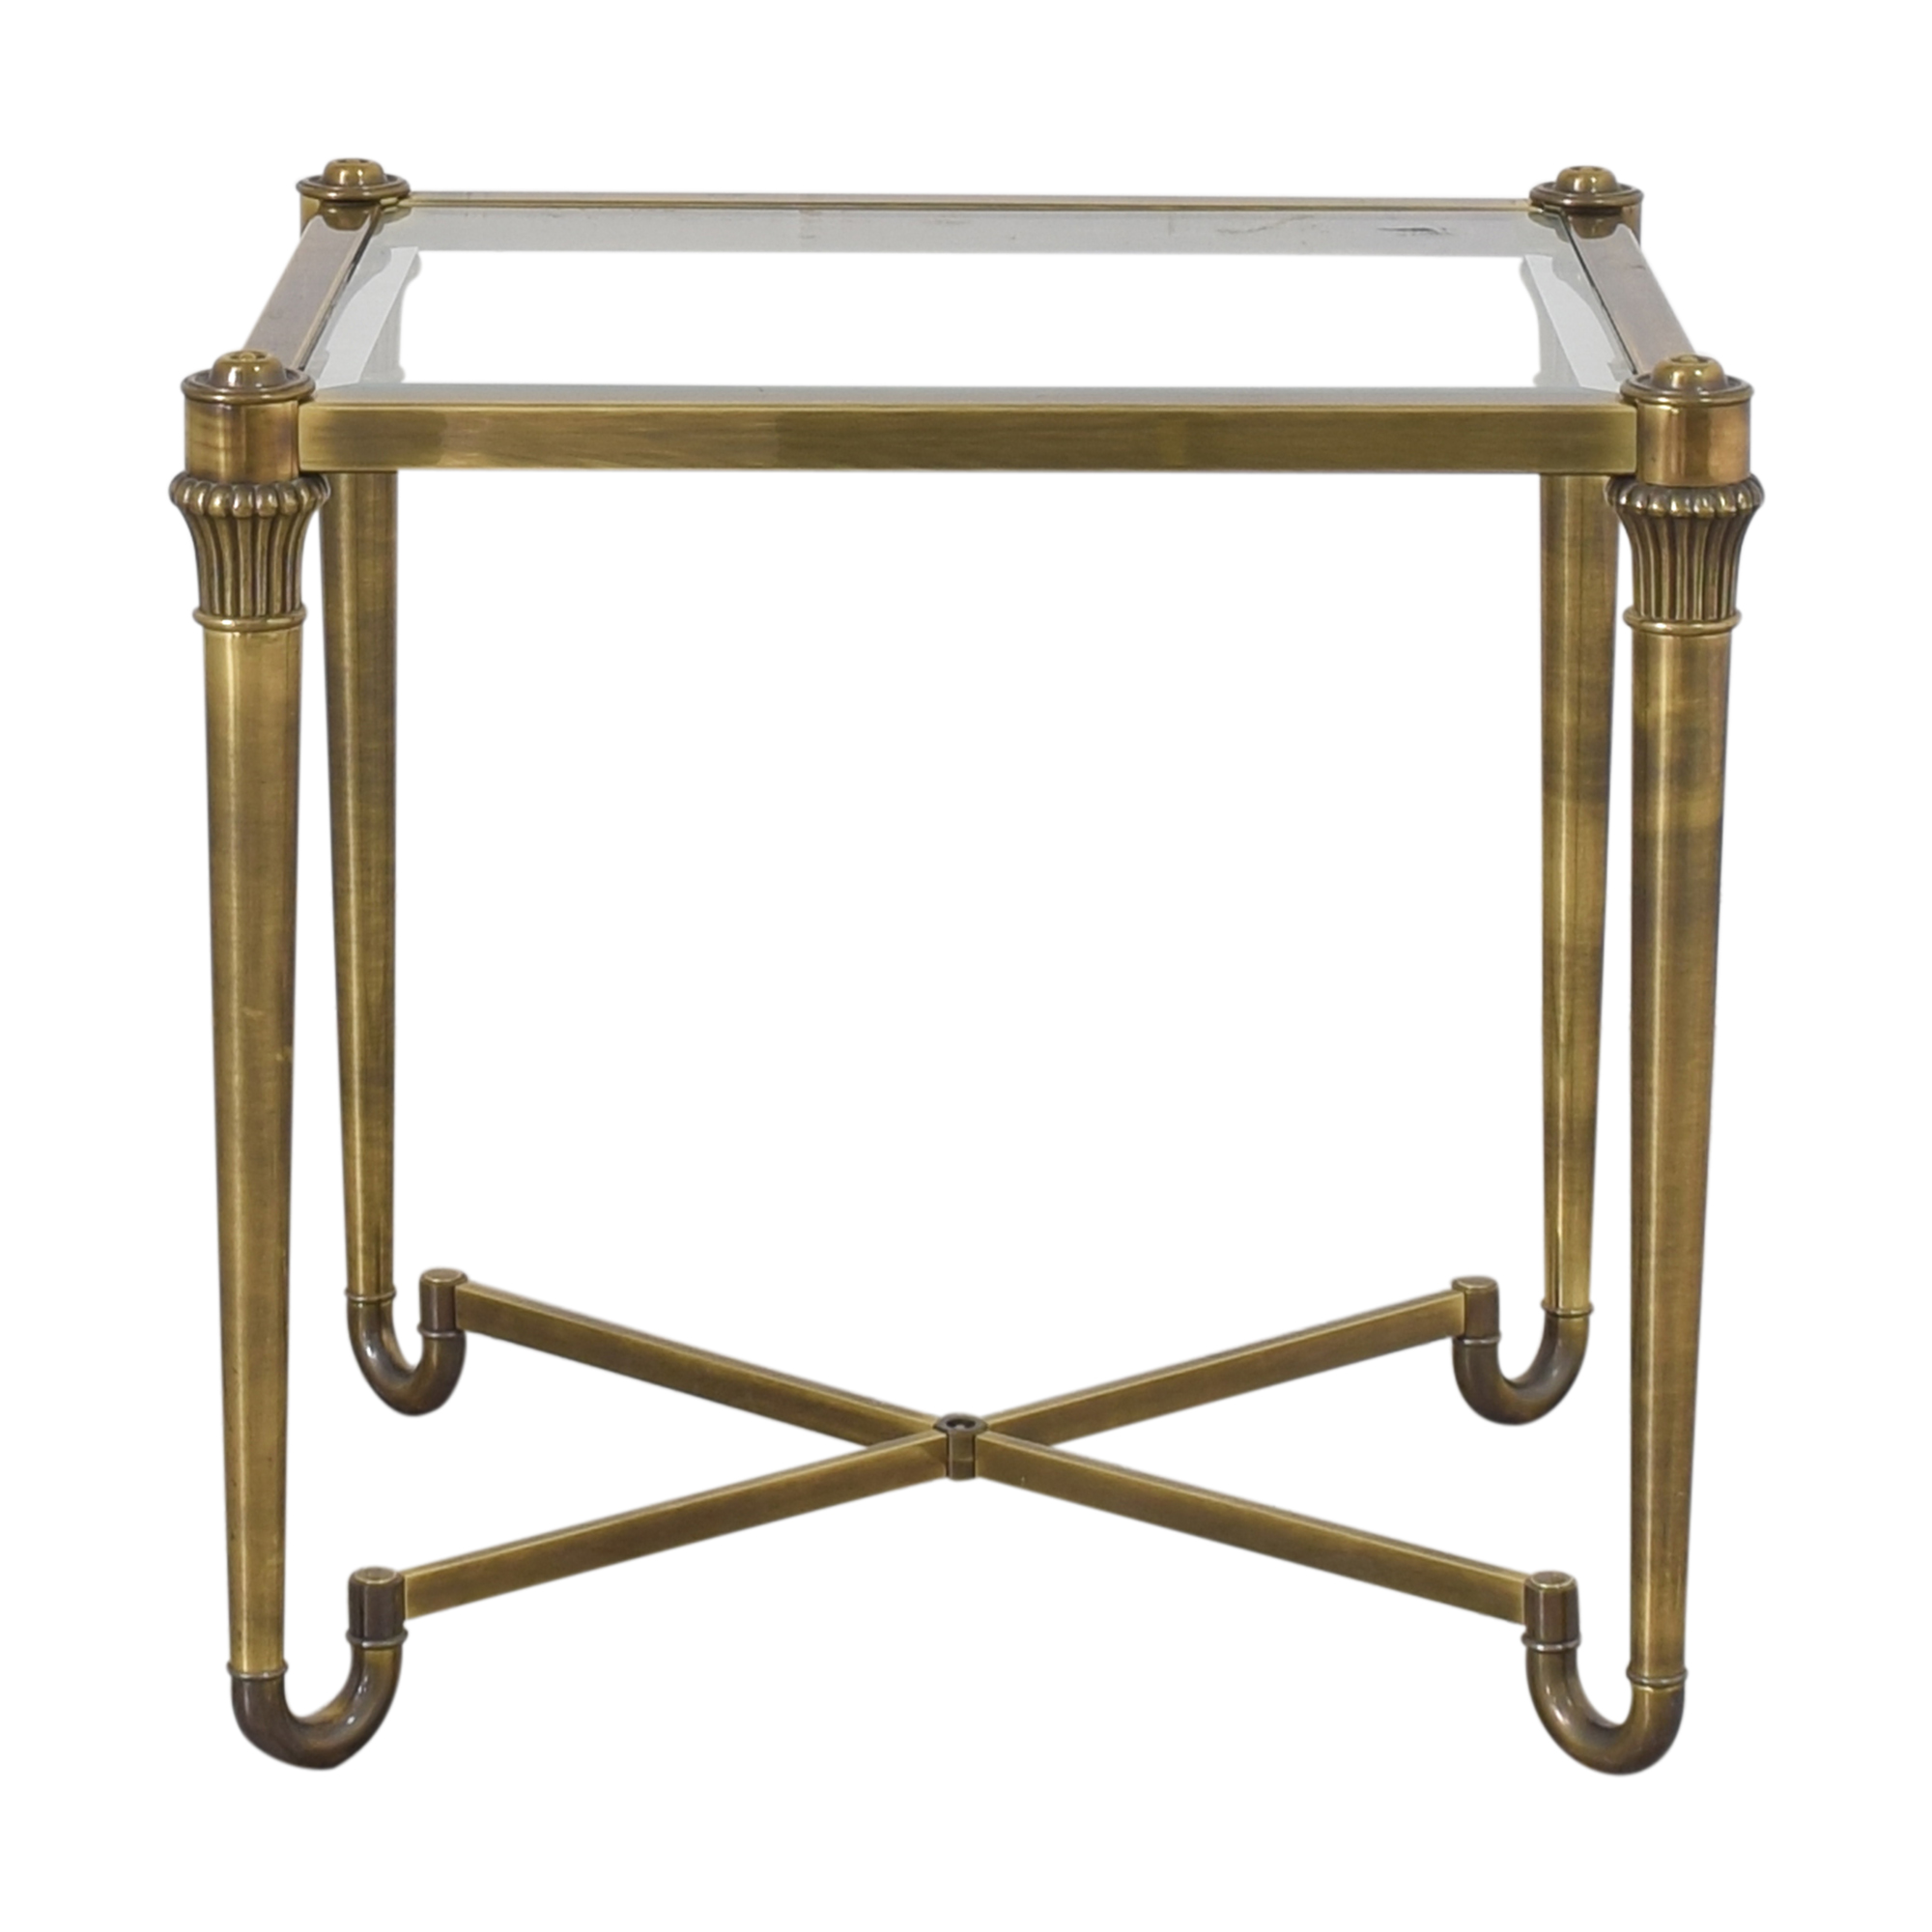 Decorative Accent Table for sale